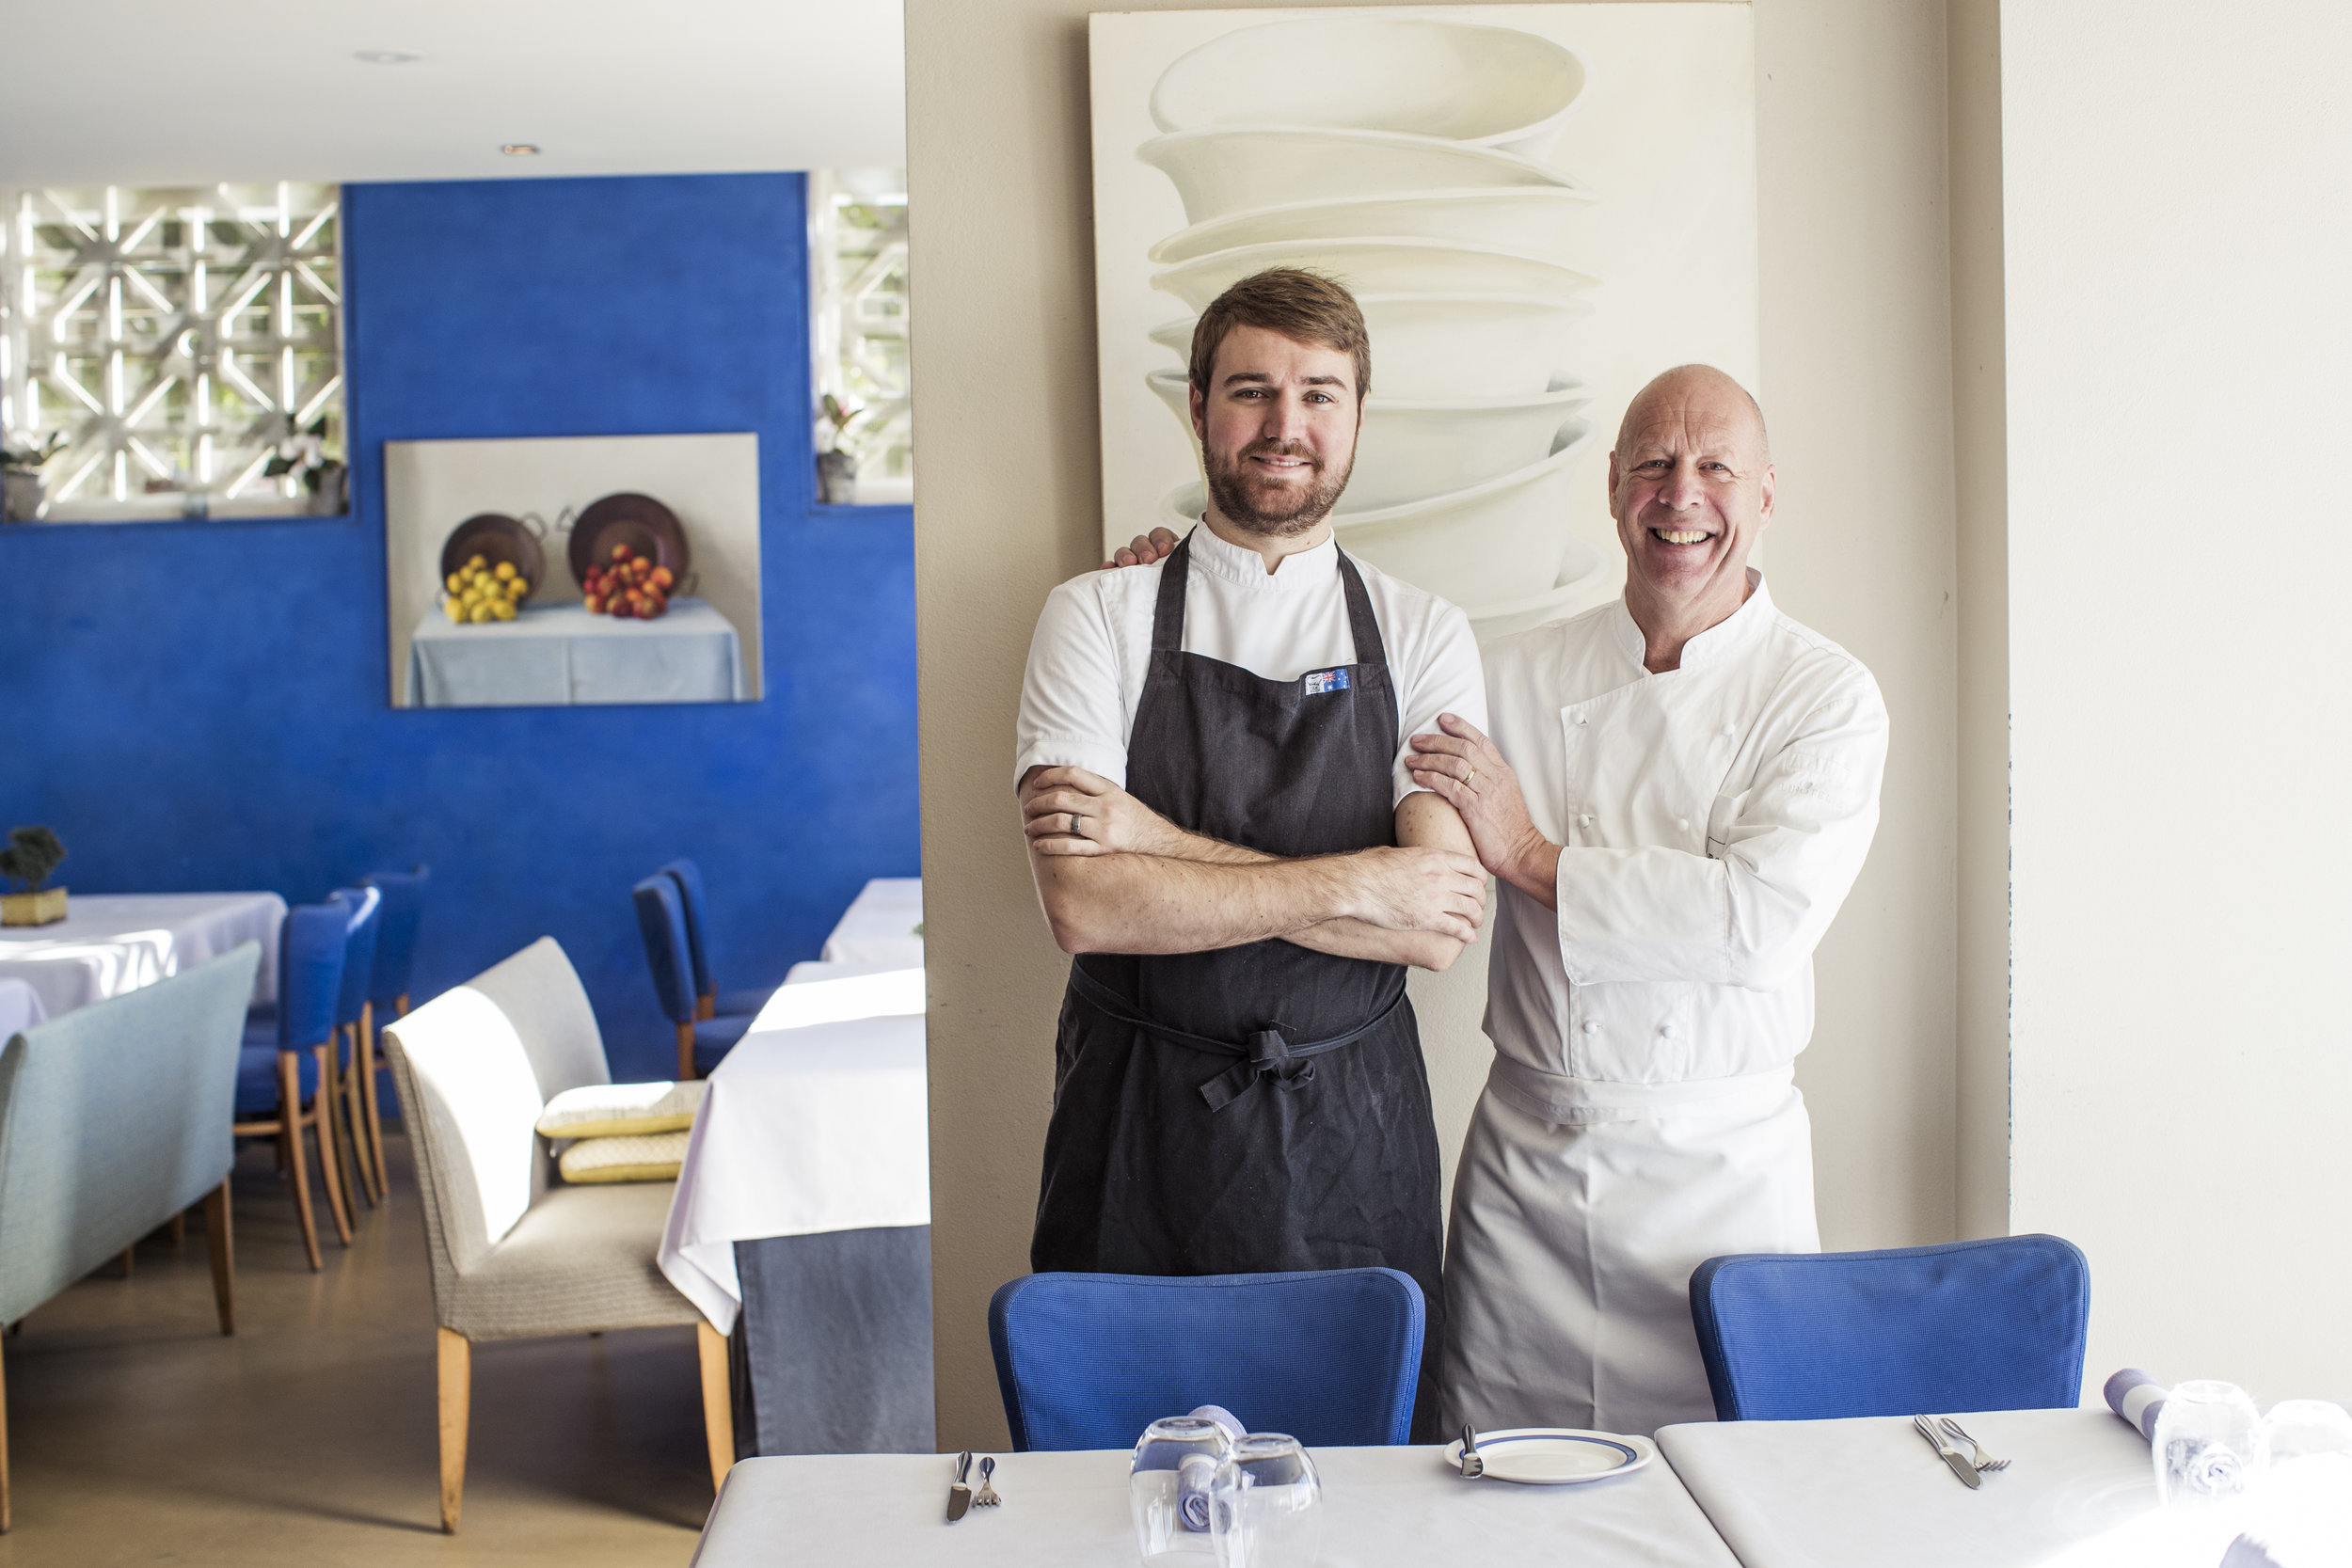 Iconic Chef and Owner of Bathers Pavilion with his 26-year-old Head Chef Alexis Besseau.